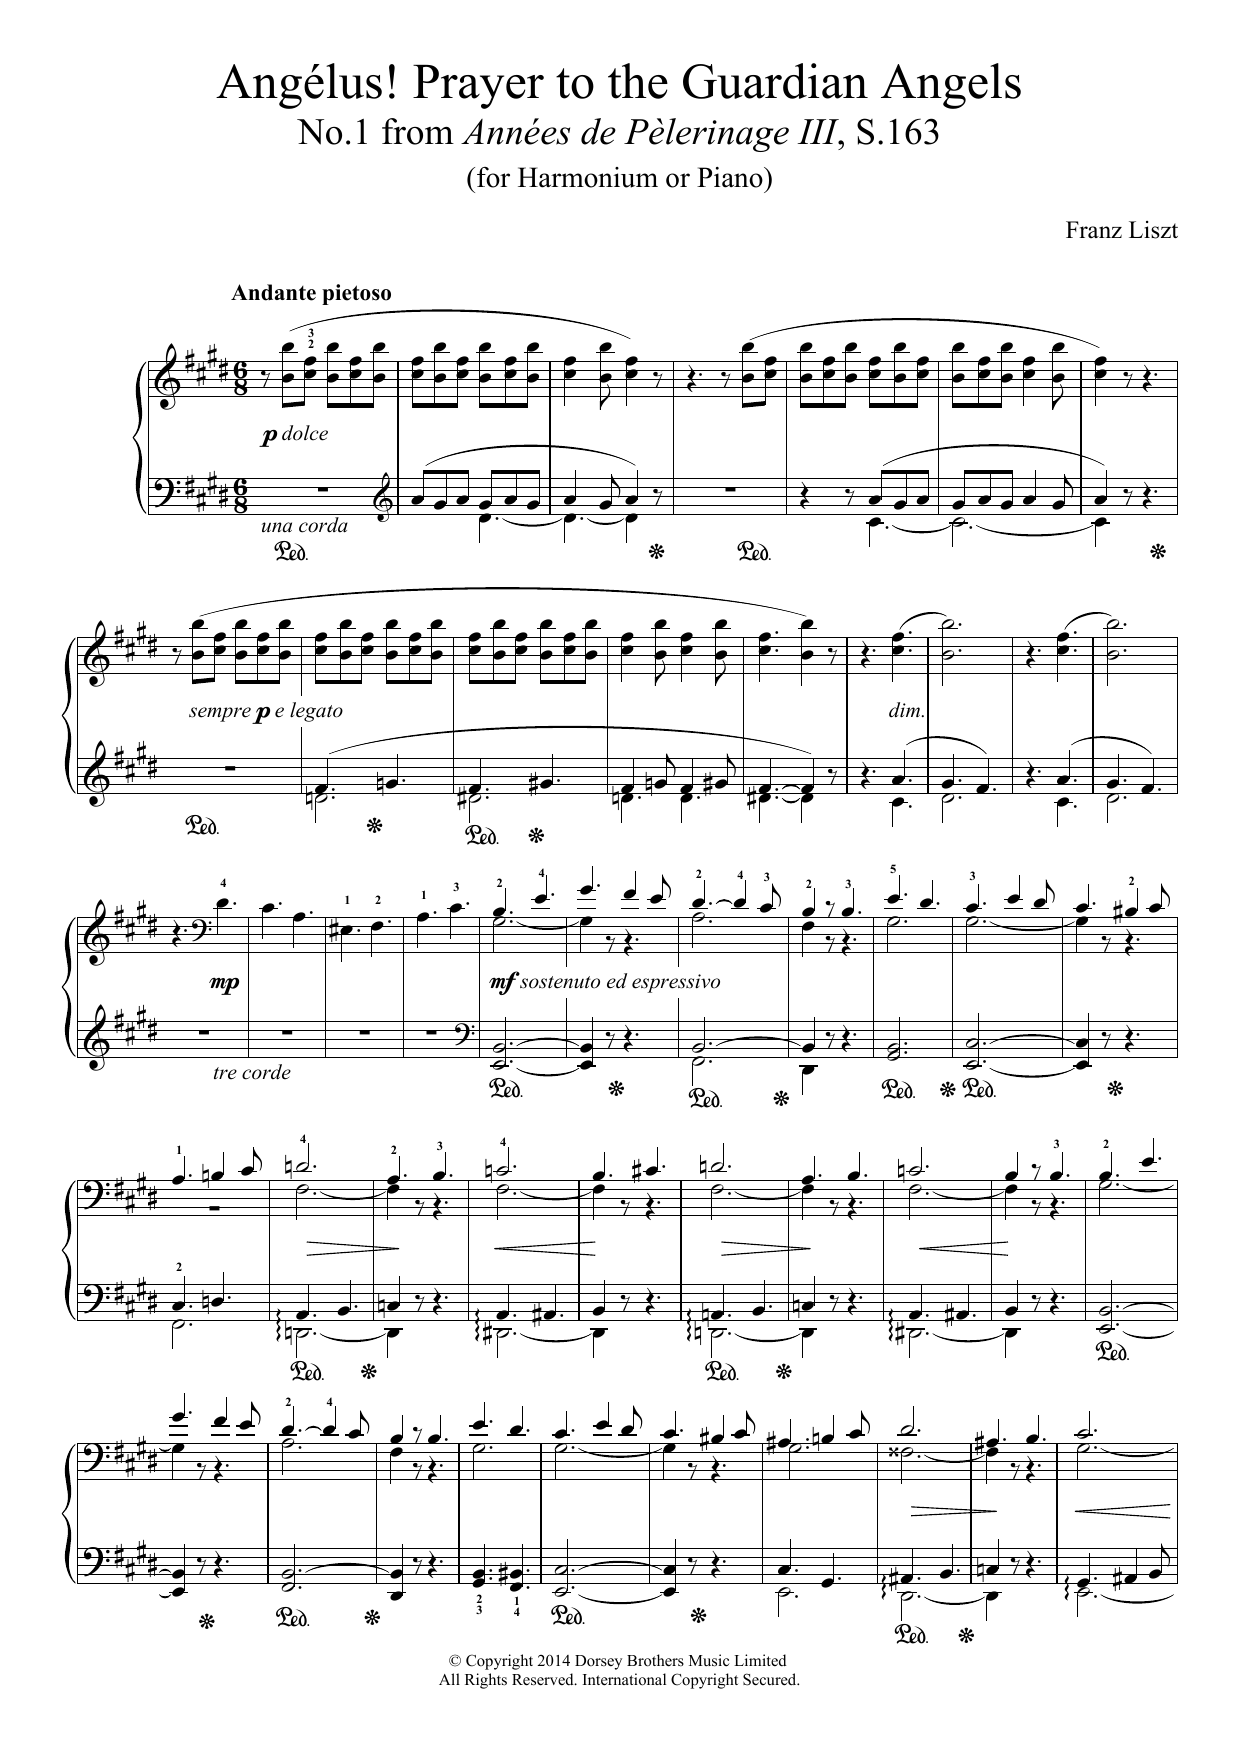 Annees De Pelerinage III, No.1: Angelus! Prayer To The Guardian Angels Sheet Music